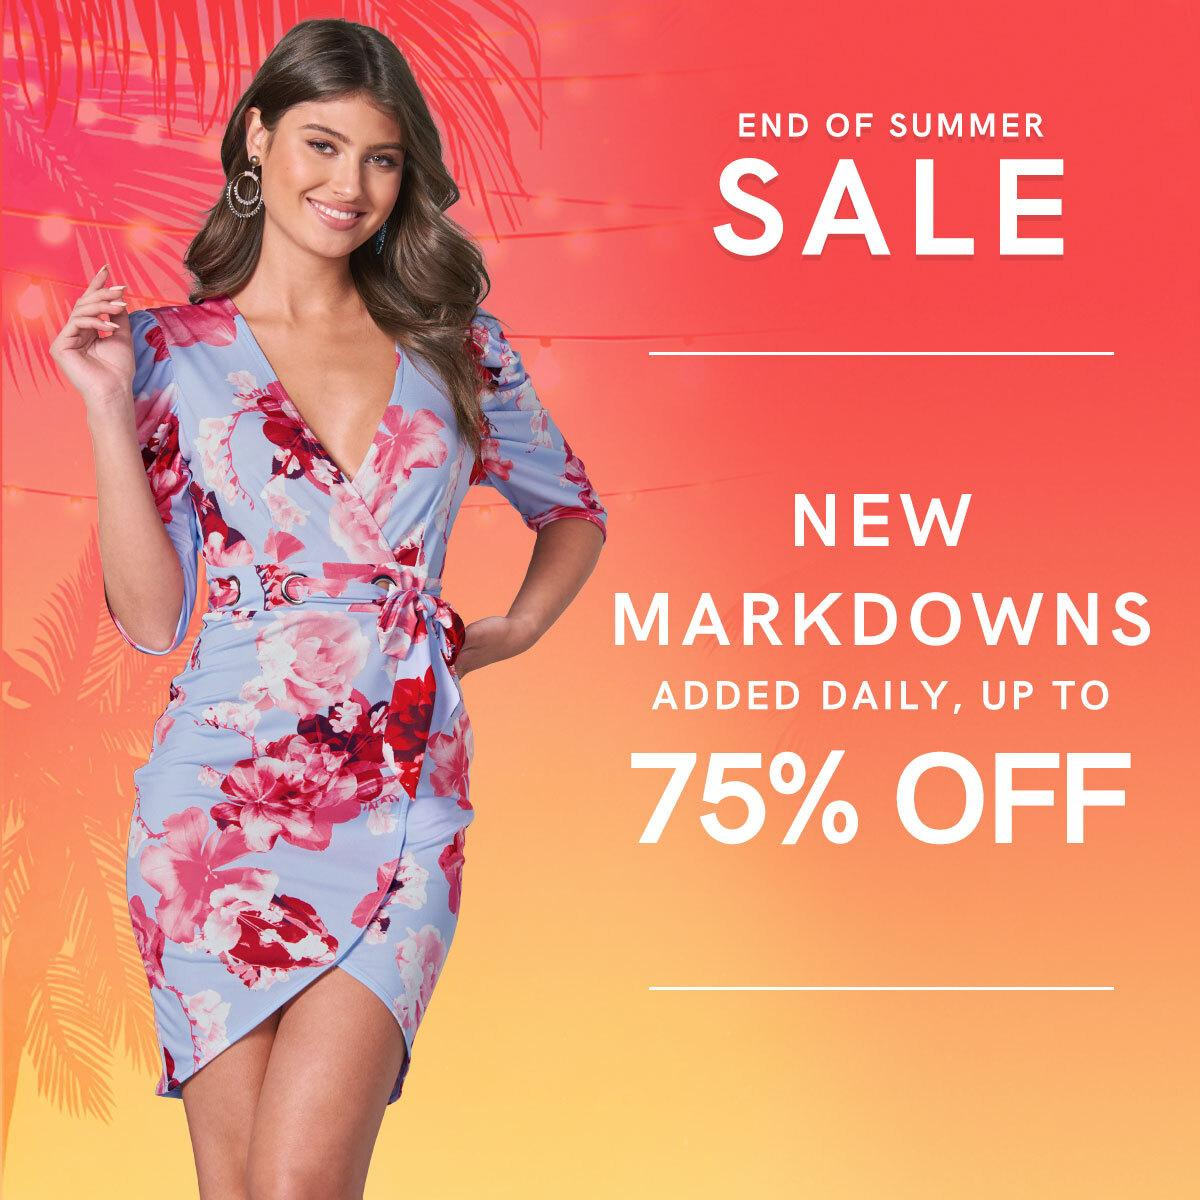 Shop our best-selling styles at the lowest prices of the season with savings up to 75%!  Floral Faux Wrap Dress: https://t.co/CZIERfV3VU  End of Summer Sale: https://t.co/NIV0hwNFeG https://t.co/IqnHOhn6mC